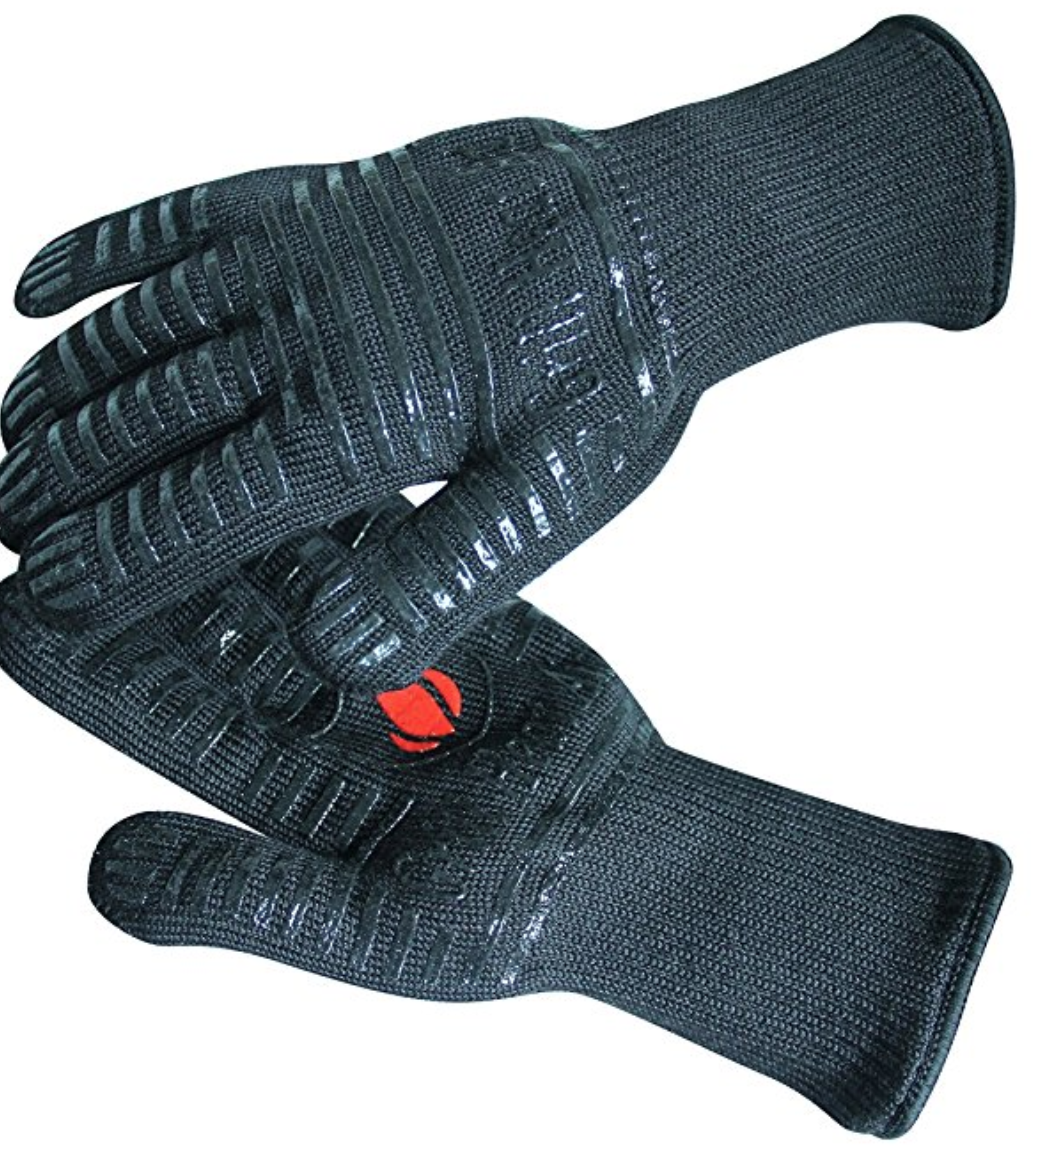 Heat Resistant Gloves for Grilling